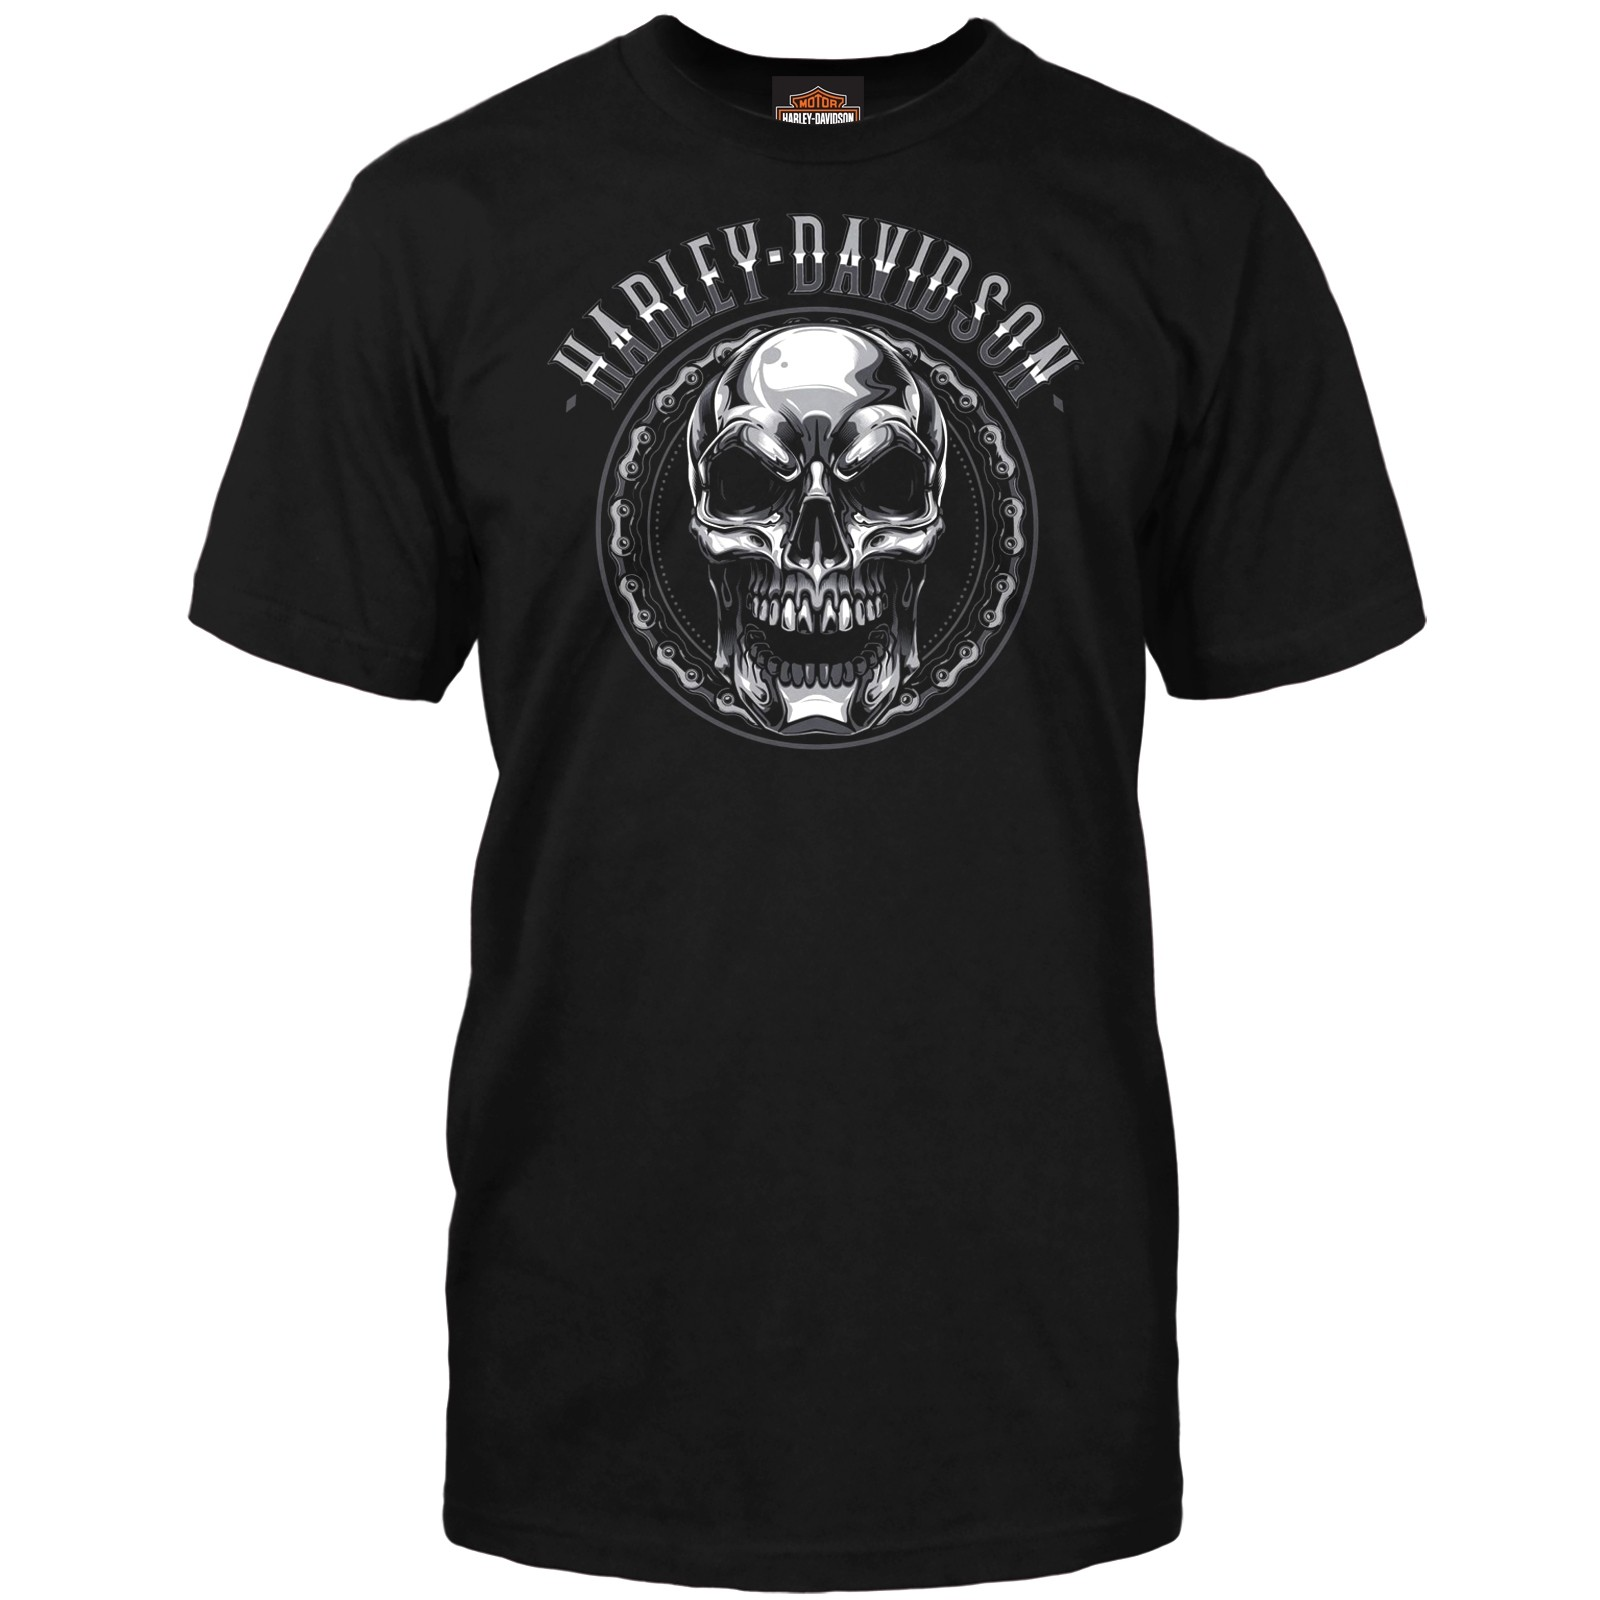 Harley-Davidson Men's Skull Graphic T-Shirt - USAG Stuttgart | Chromed Out